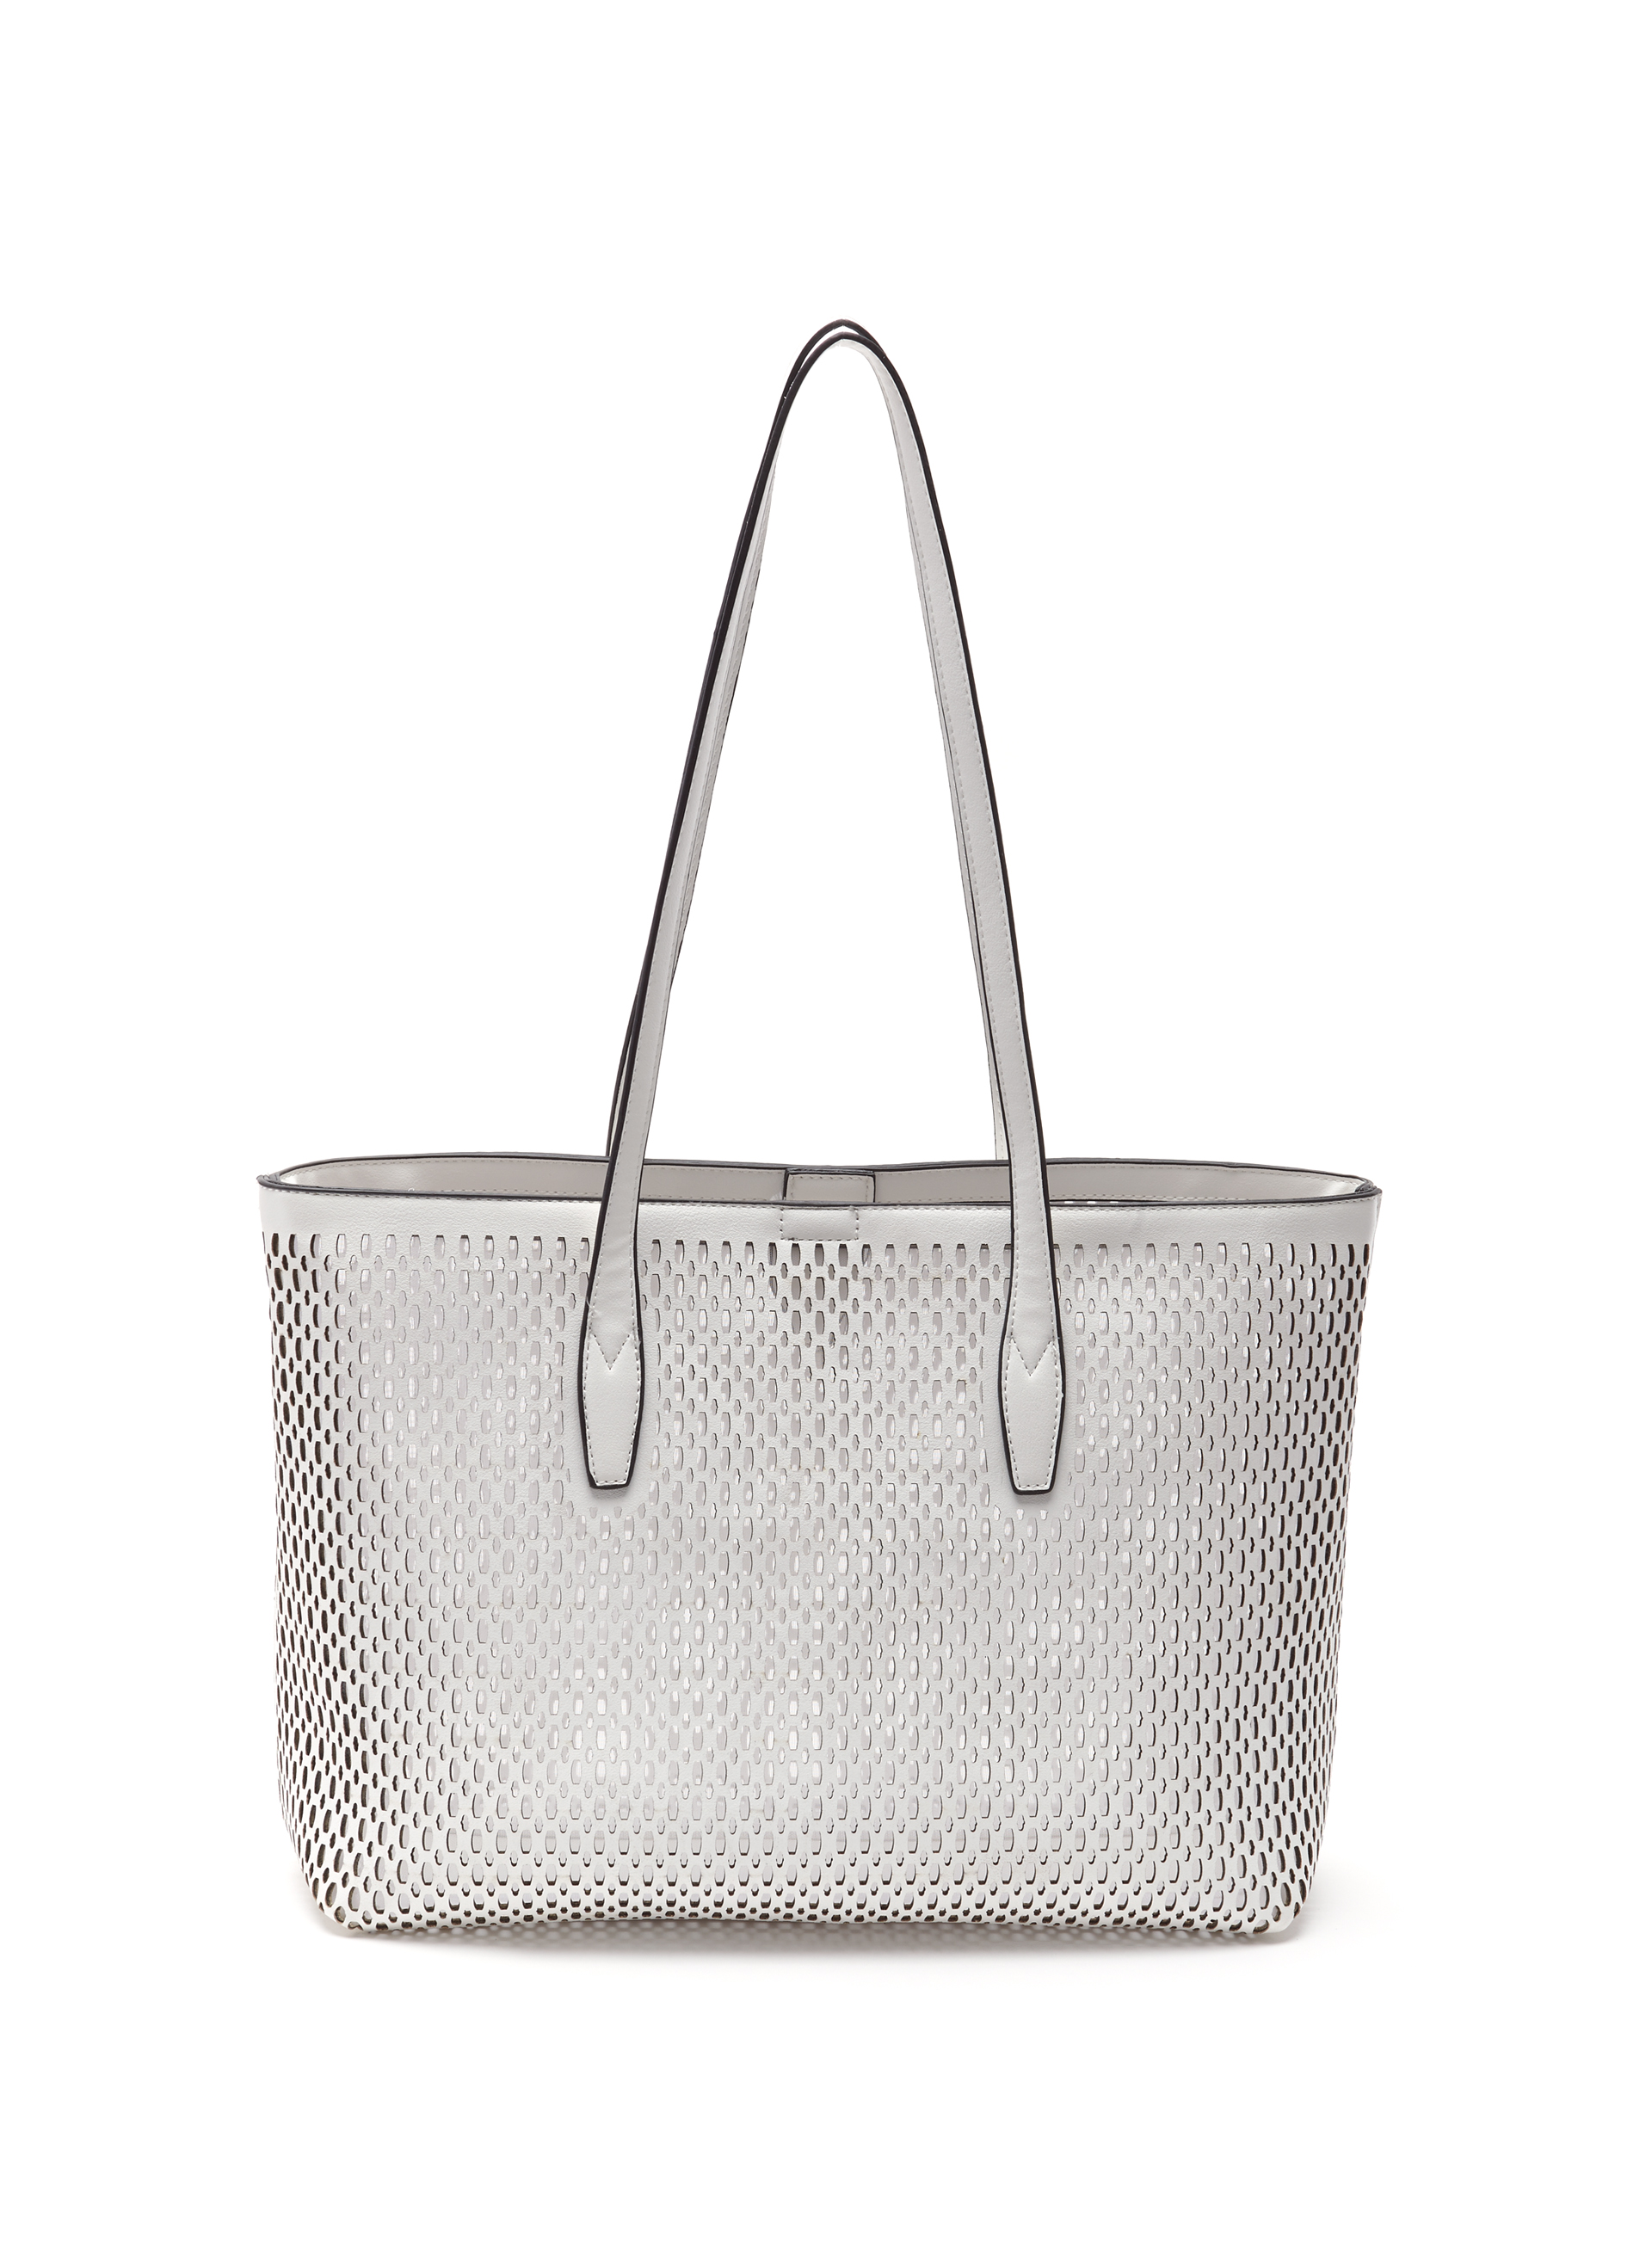 Perforated Studded Tote Bag, White, hi-res